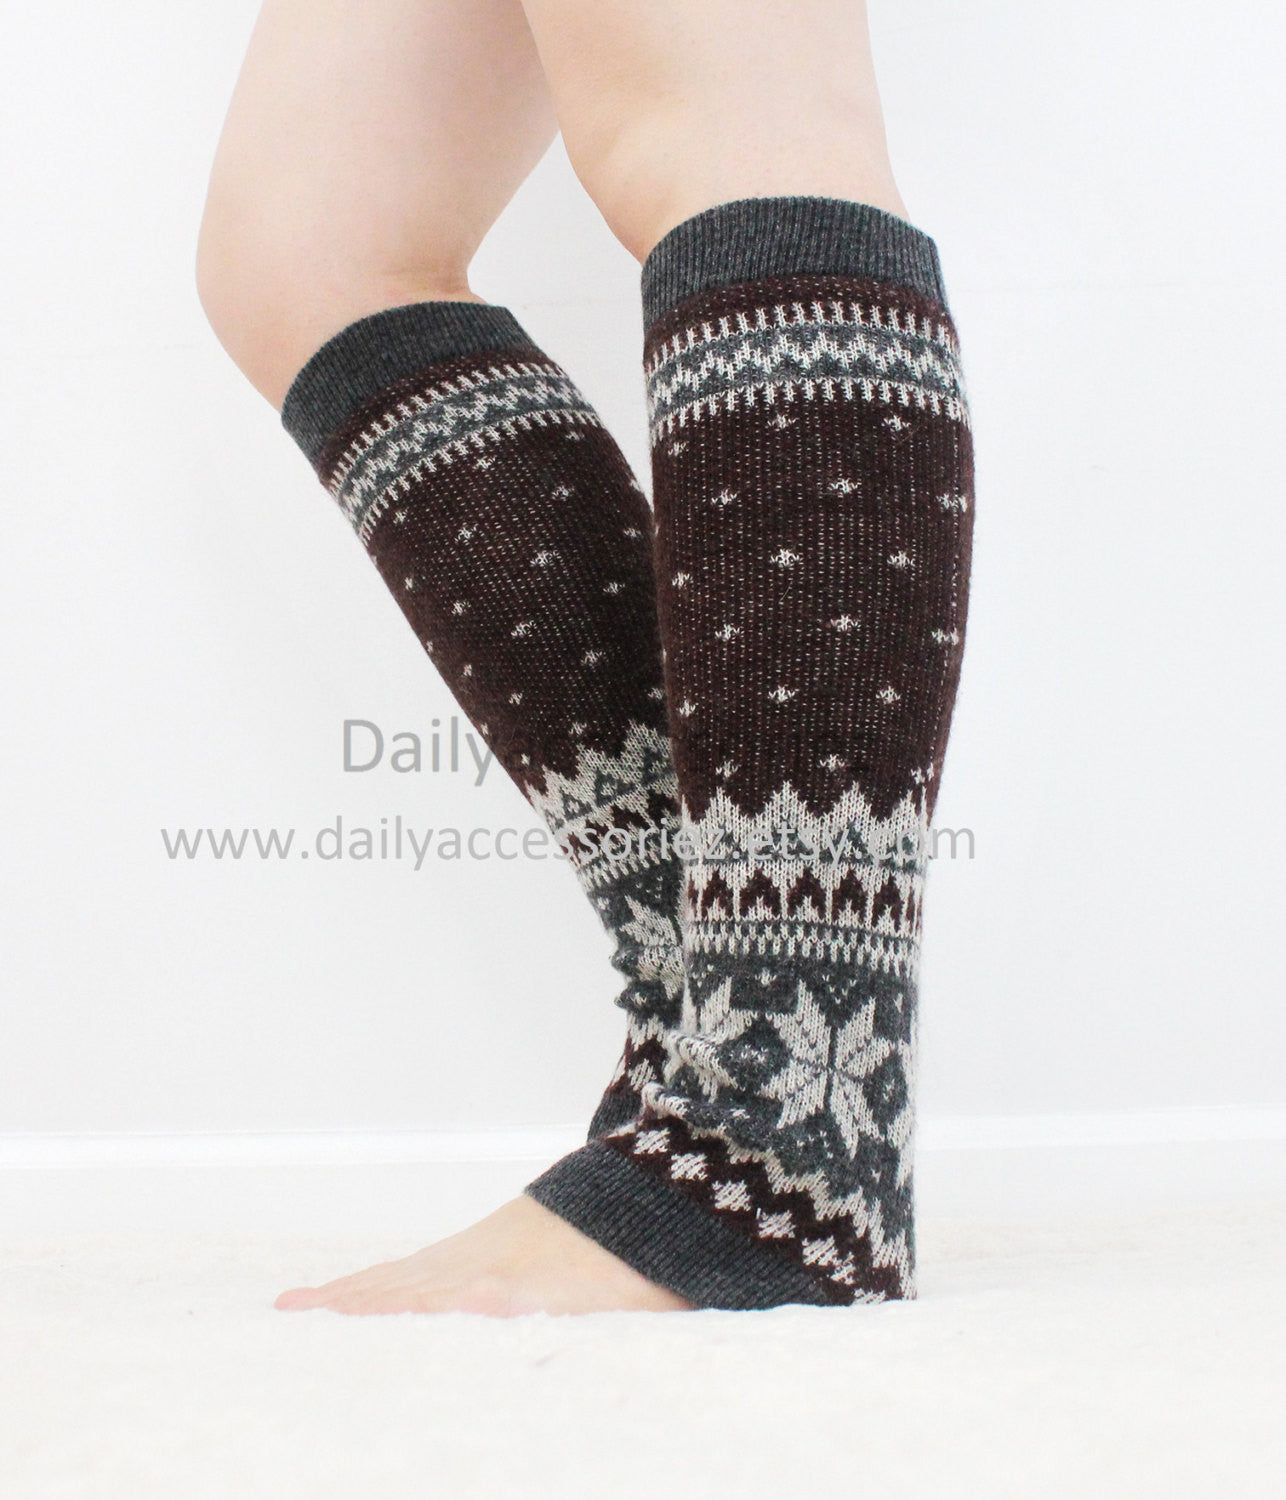 Christmas womens leg warmers - Bean Concept - Etsy